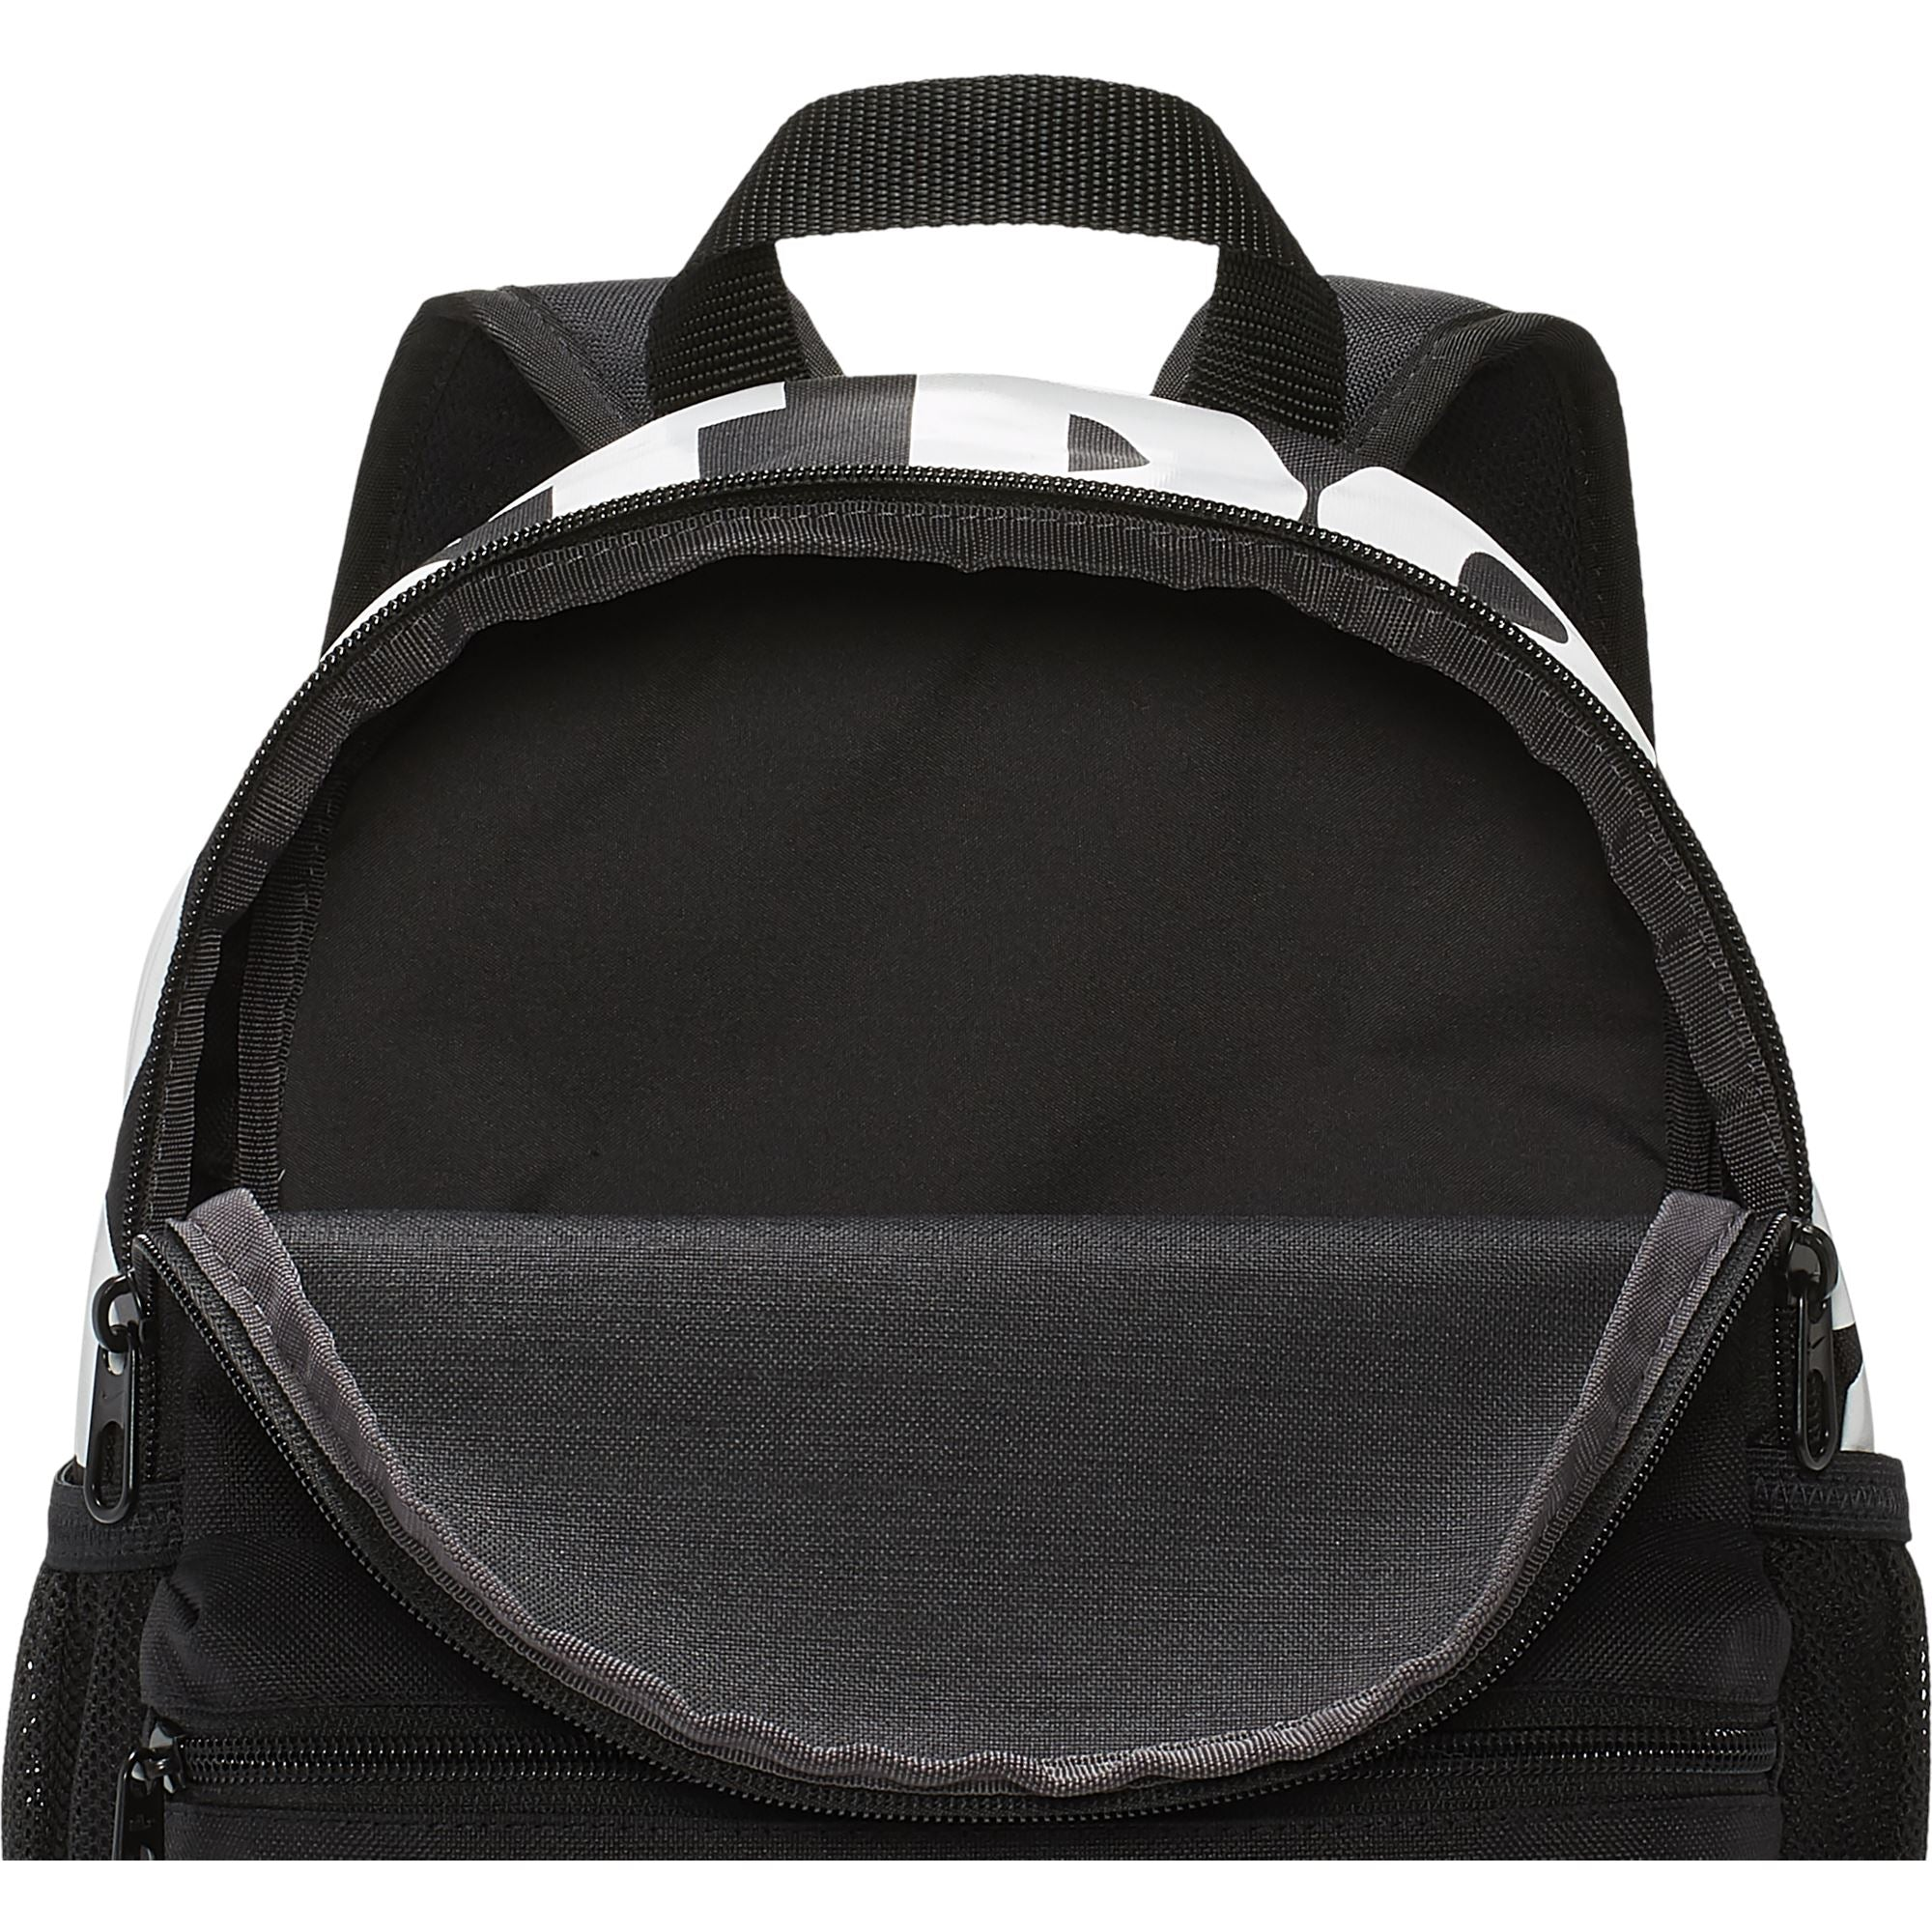 Nike Brasilia Jdi Mini Backpack - Black/Black/White SP-Accessories-Bags Nike